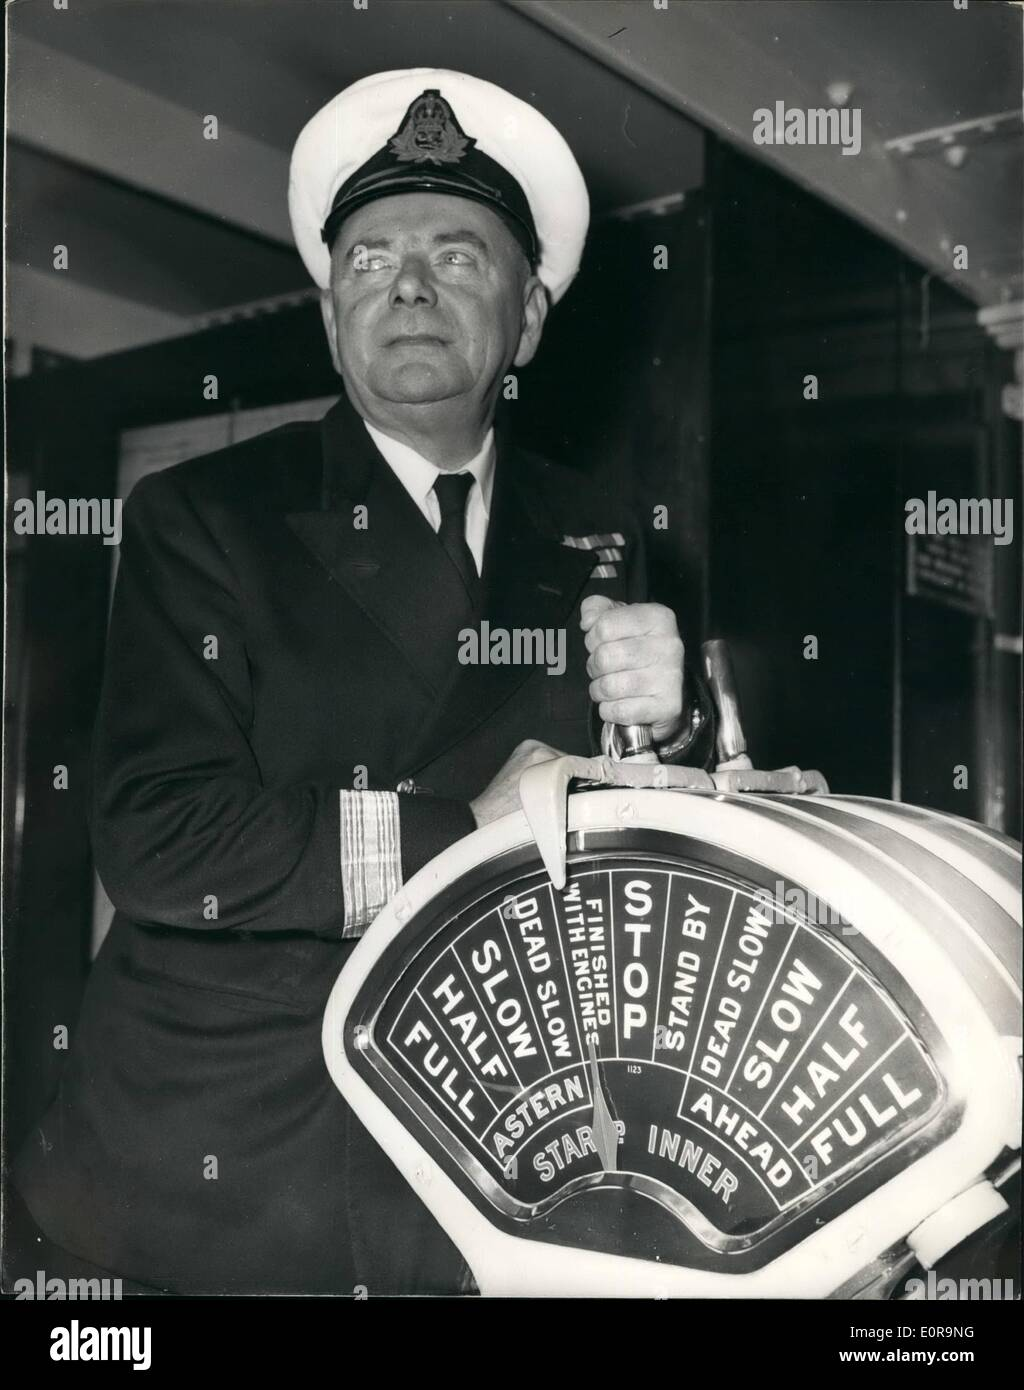 Queen Mary Engine Room: Commodore Of The Cunard Fleet Retires